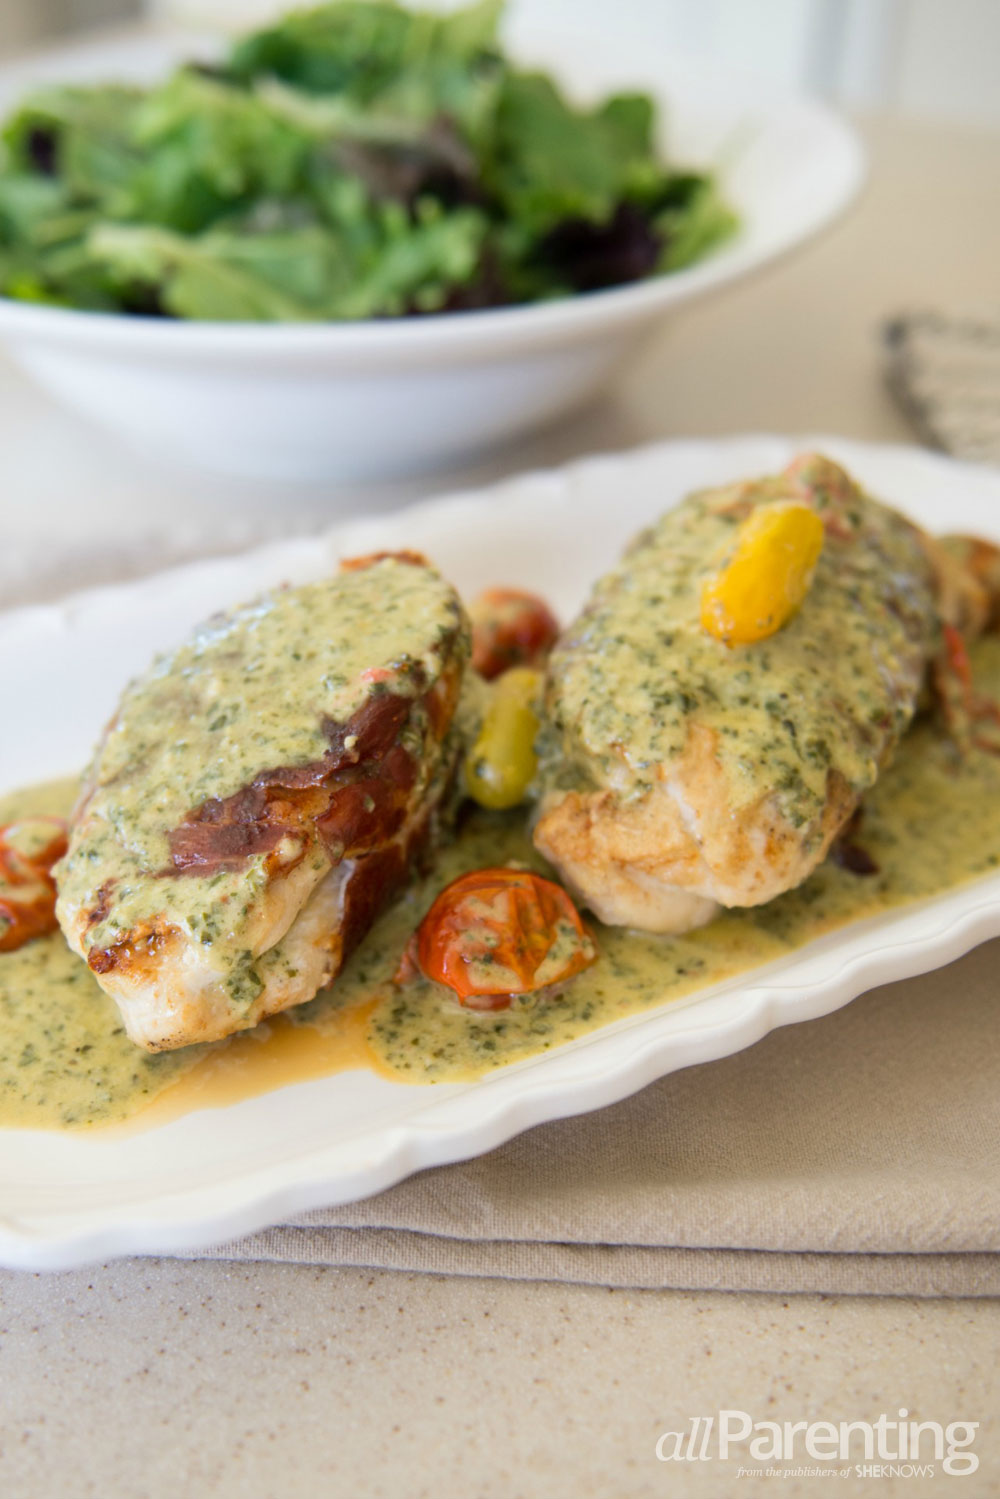 allParenting Prosciutto wrapped chicken with tomatoes and pesto cream sauce